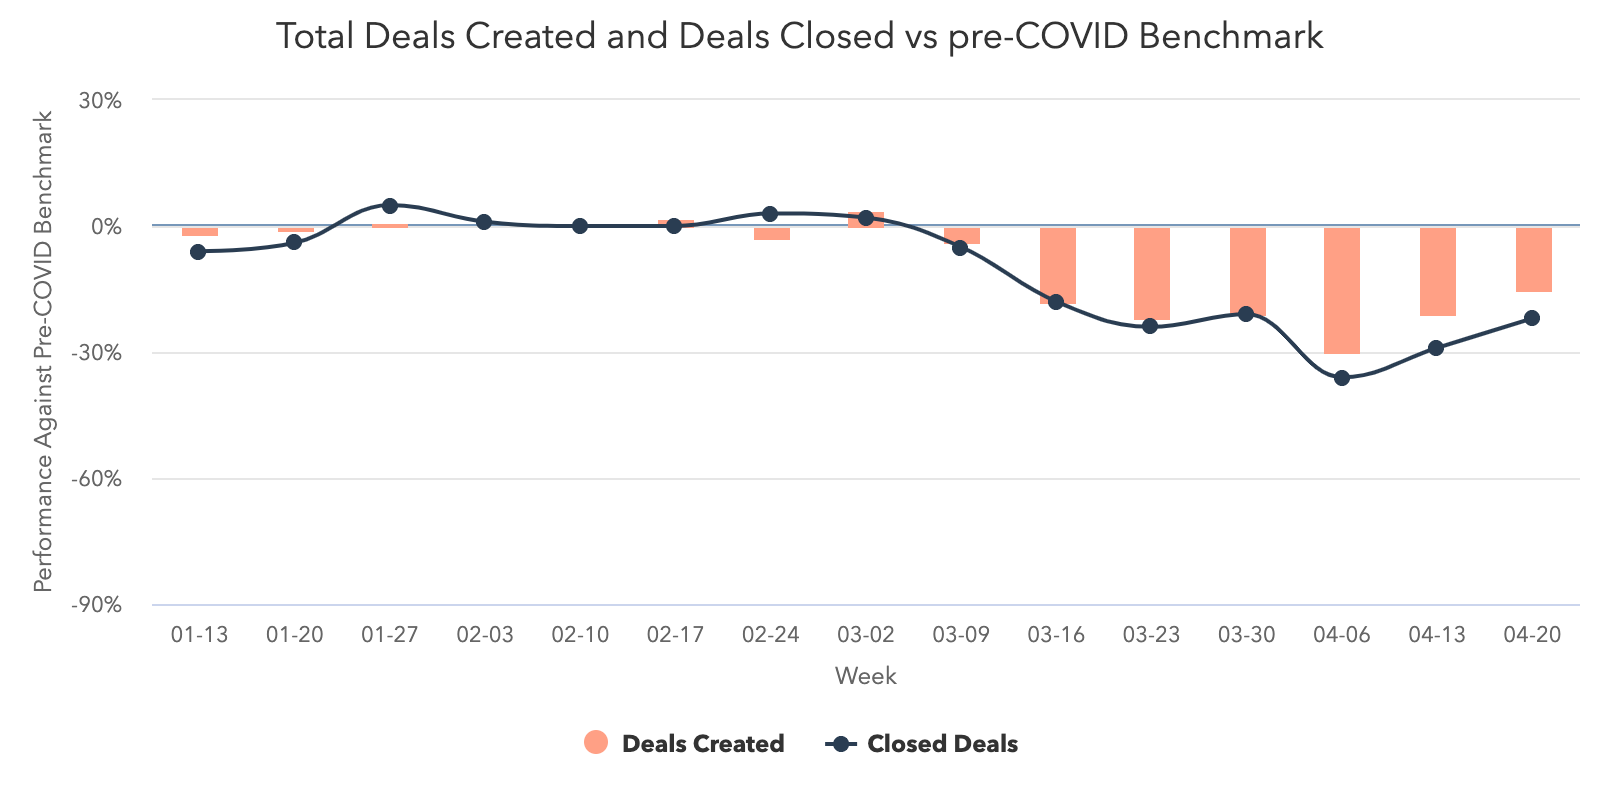 Deals-Created-vs-Deals-Closed